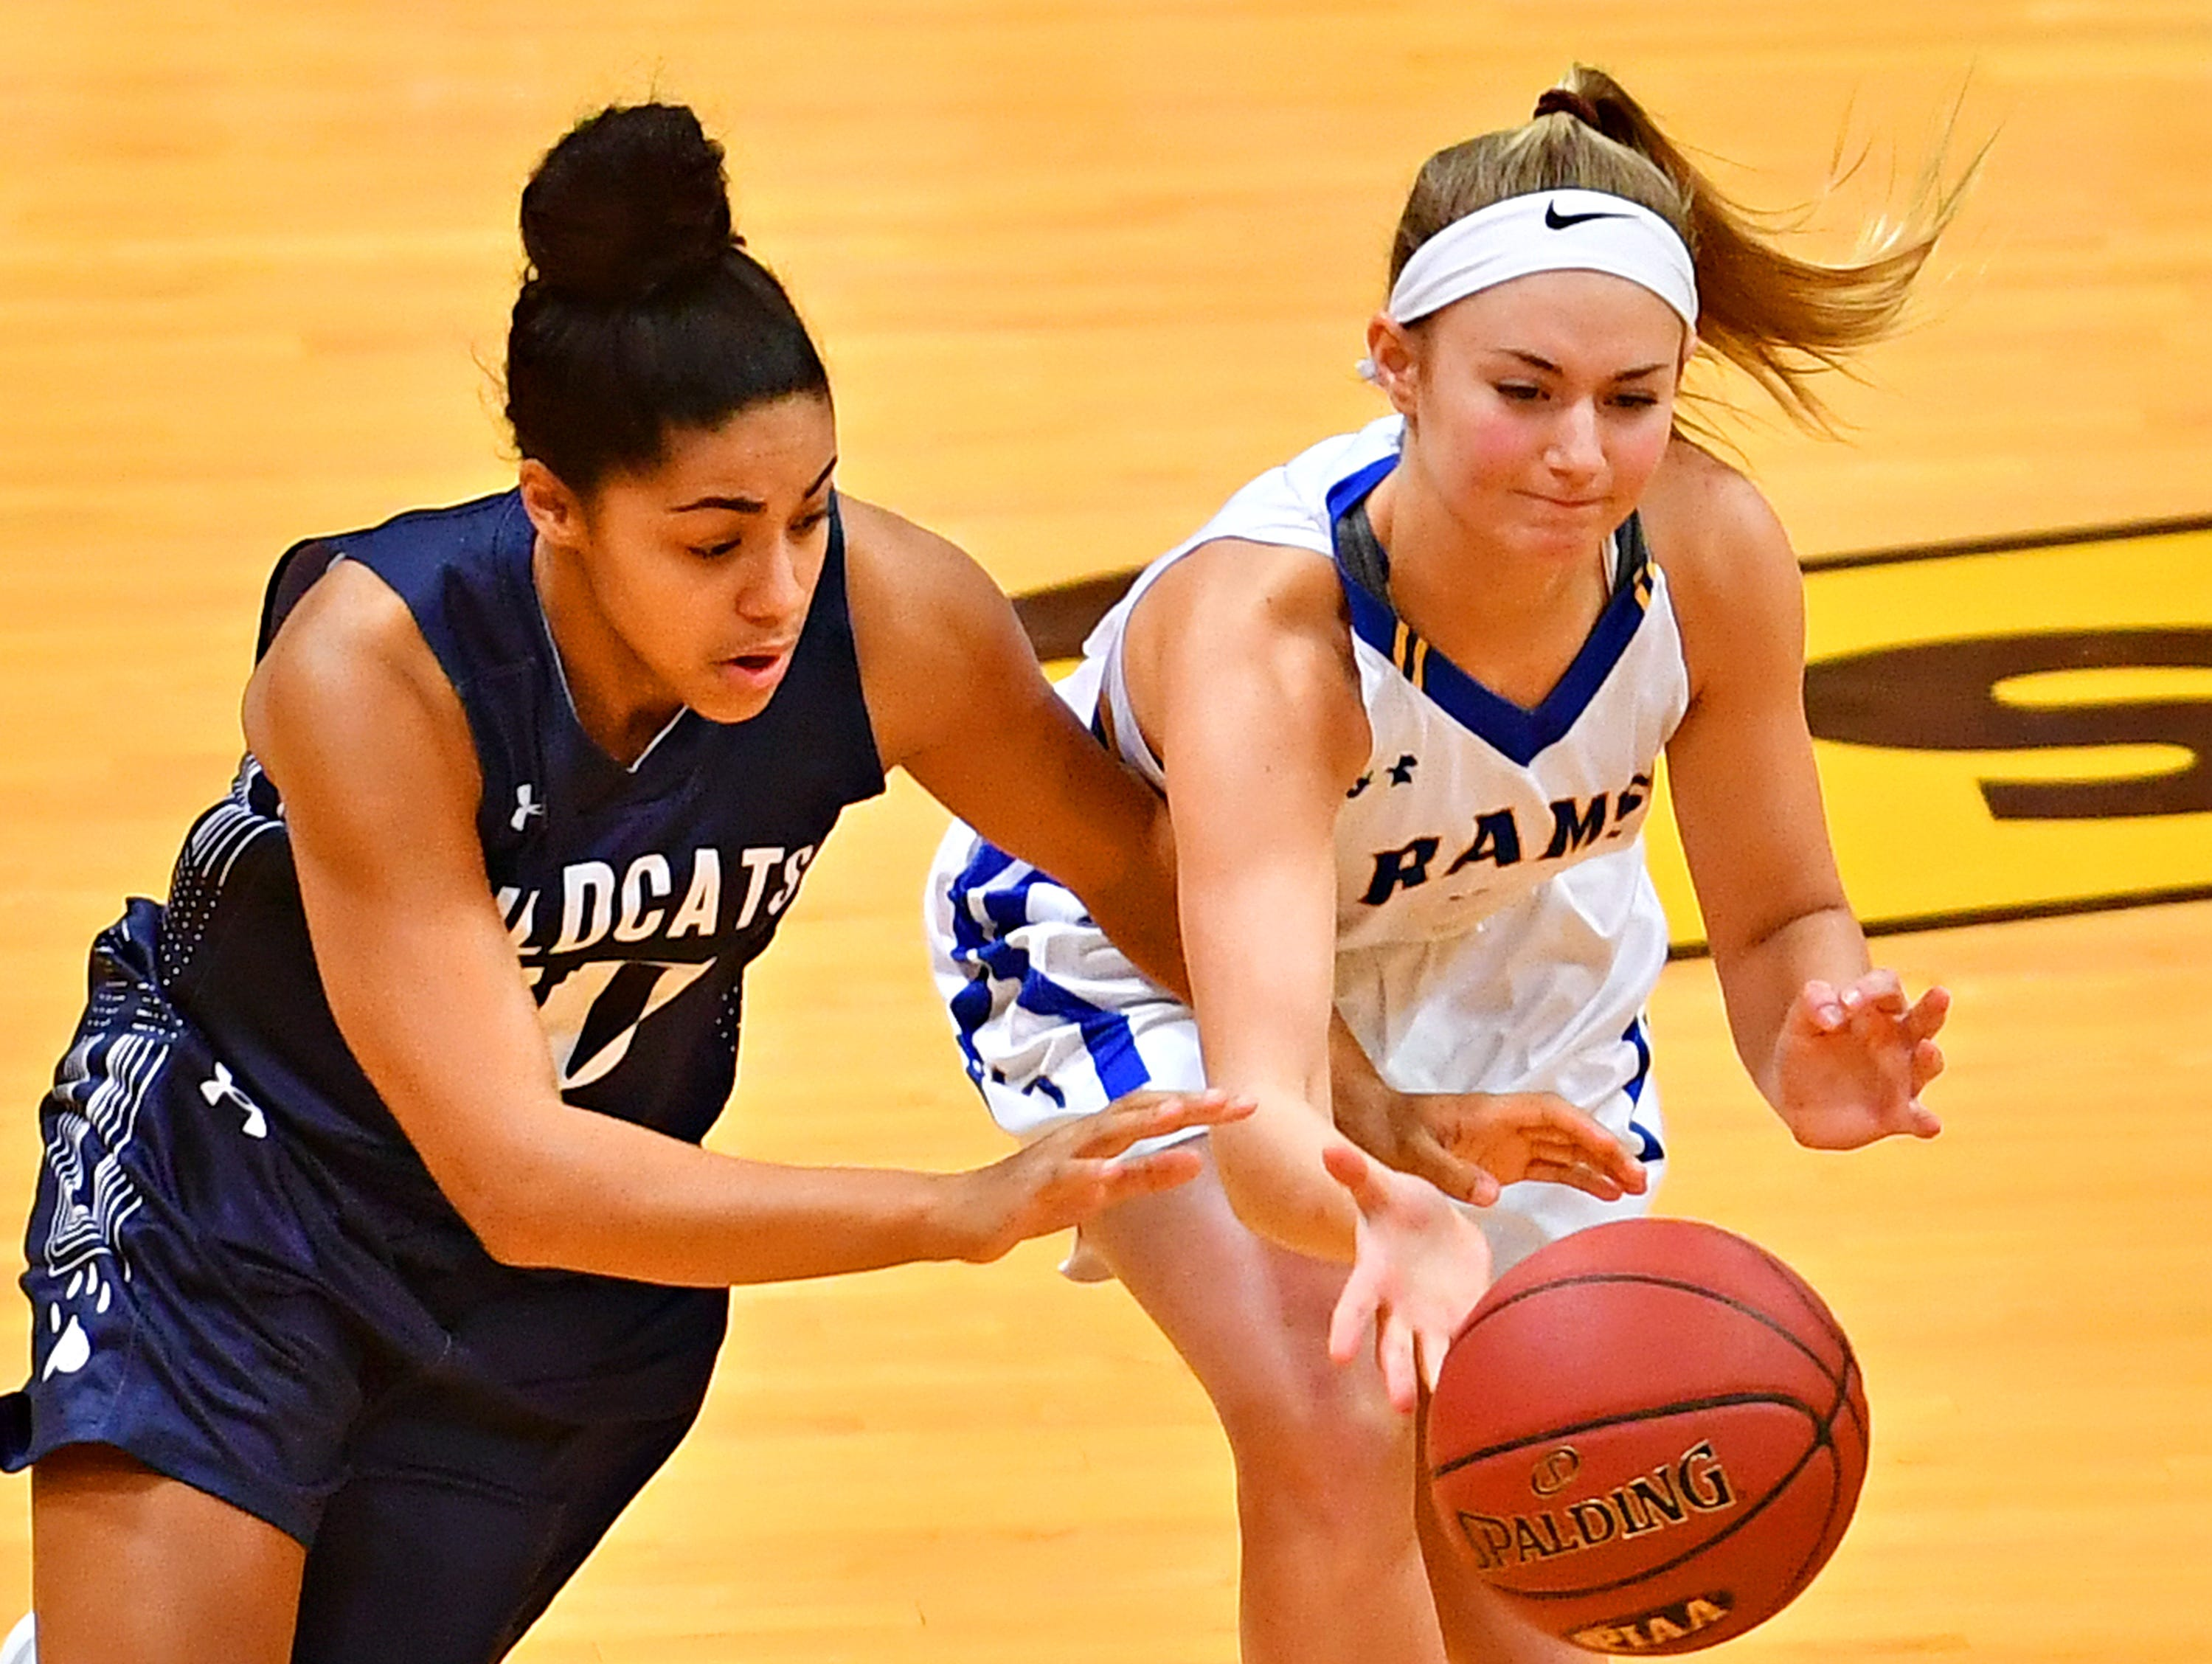 Kennard-Dale's Megan Halczuk, right, controls the ball while Mifflinburg's Angela Reamer defends during PIAA Class 4-A girl's basketball second round at Milton Hershey High School in Hershey, Wednesday, March 13, 2019. Mifflinburg would win the game 51-45. Dawn J. Sagert photo